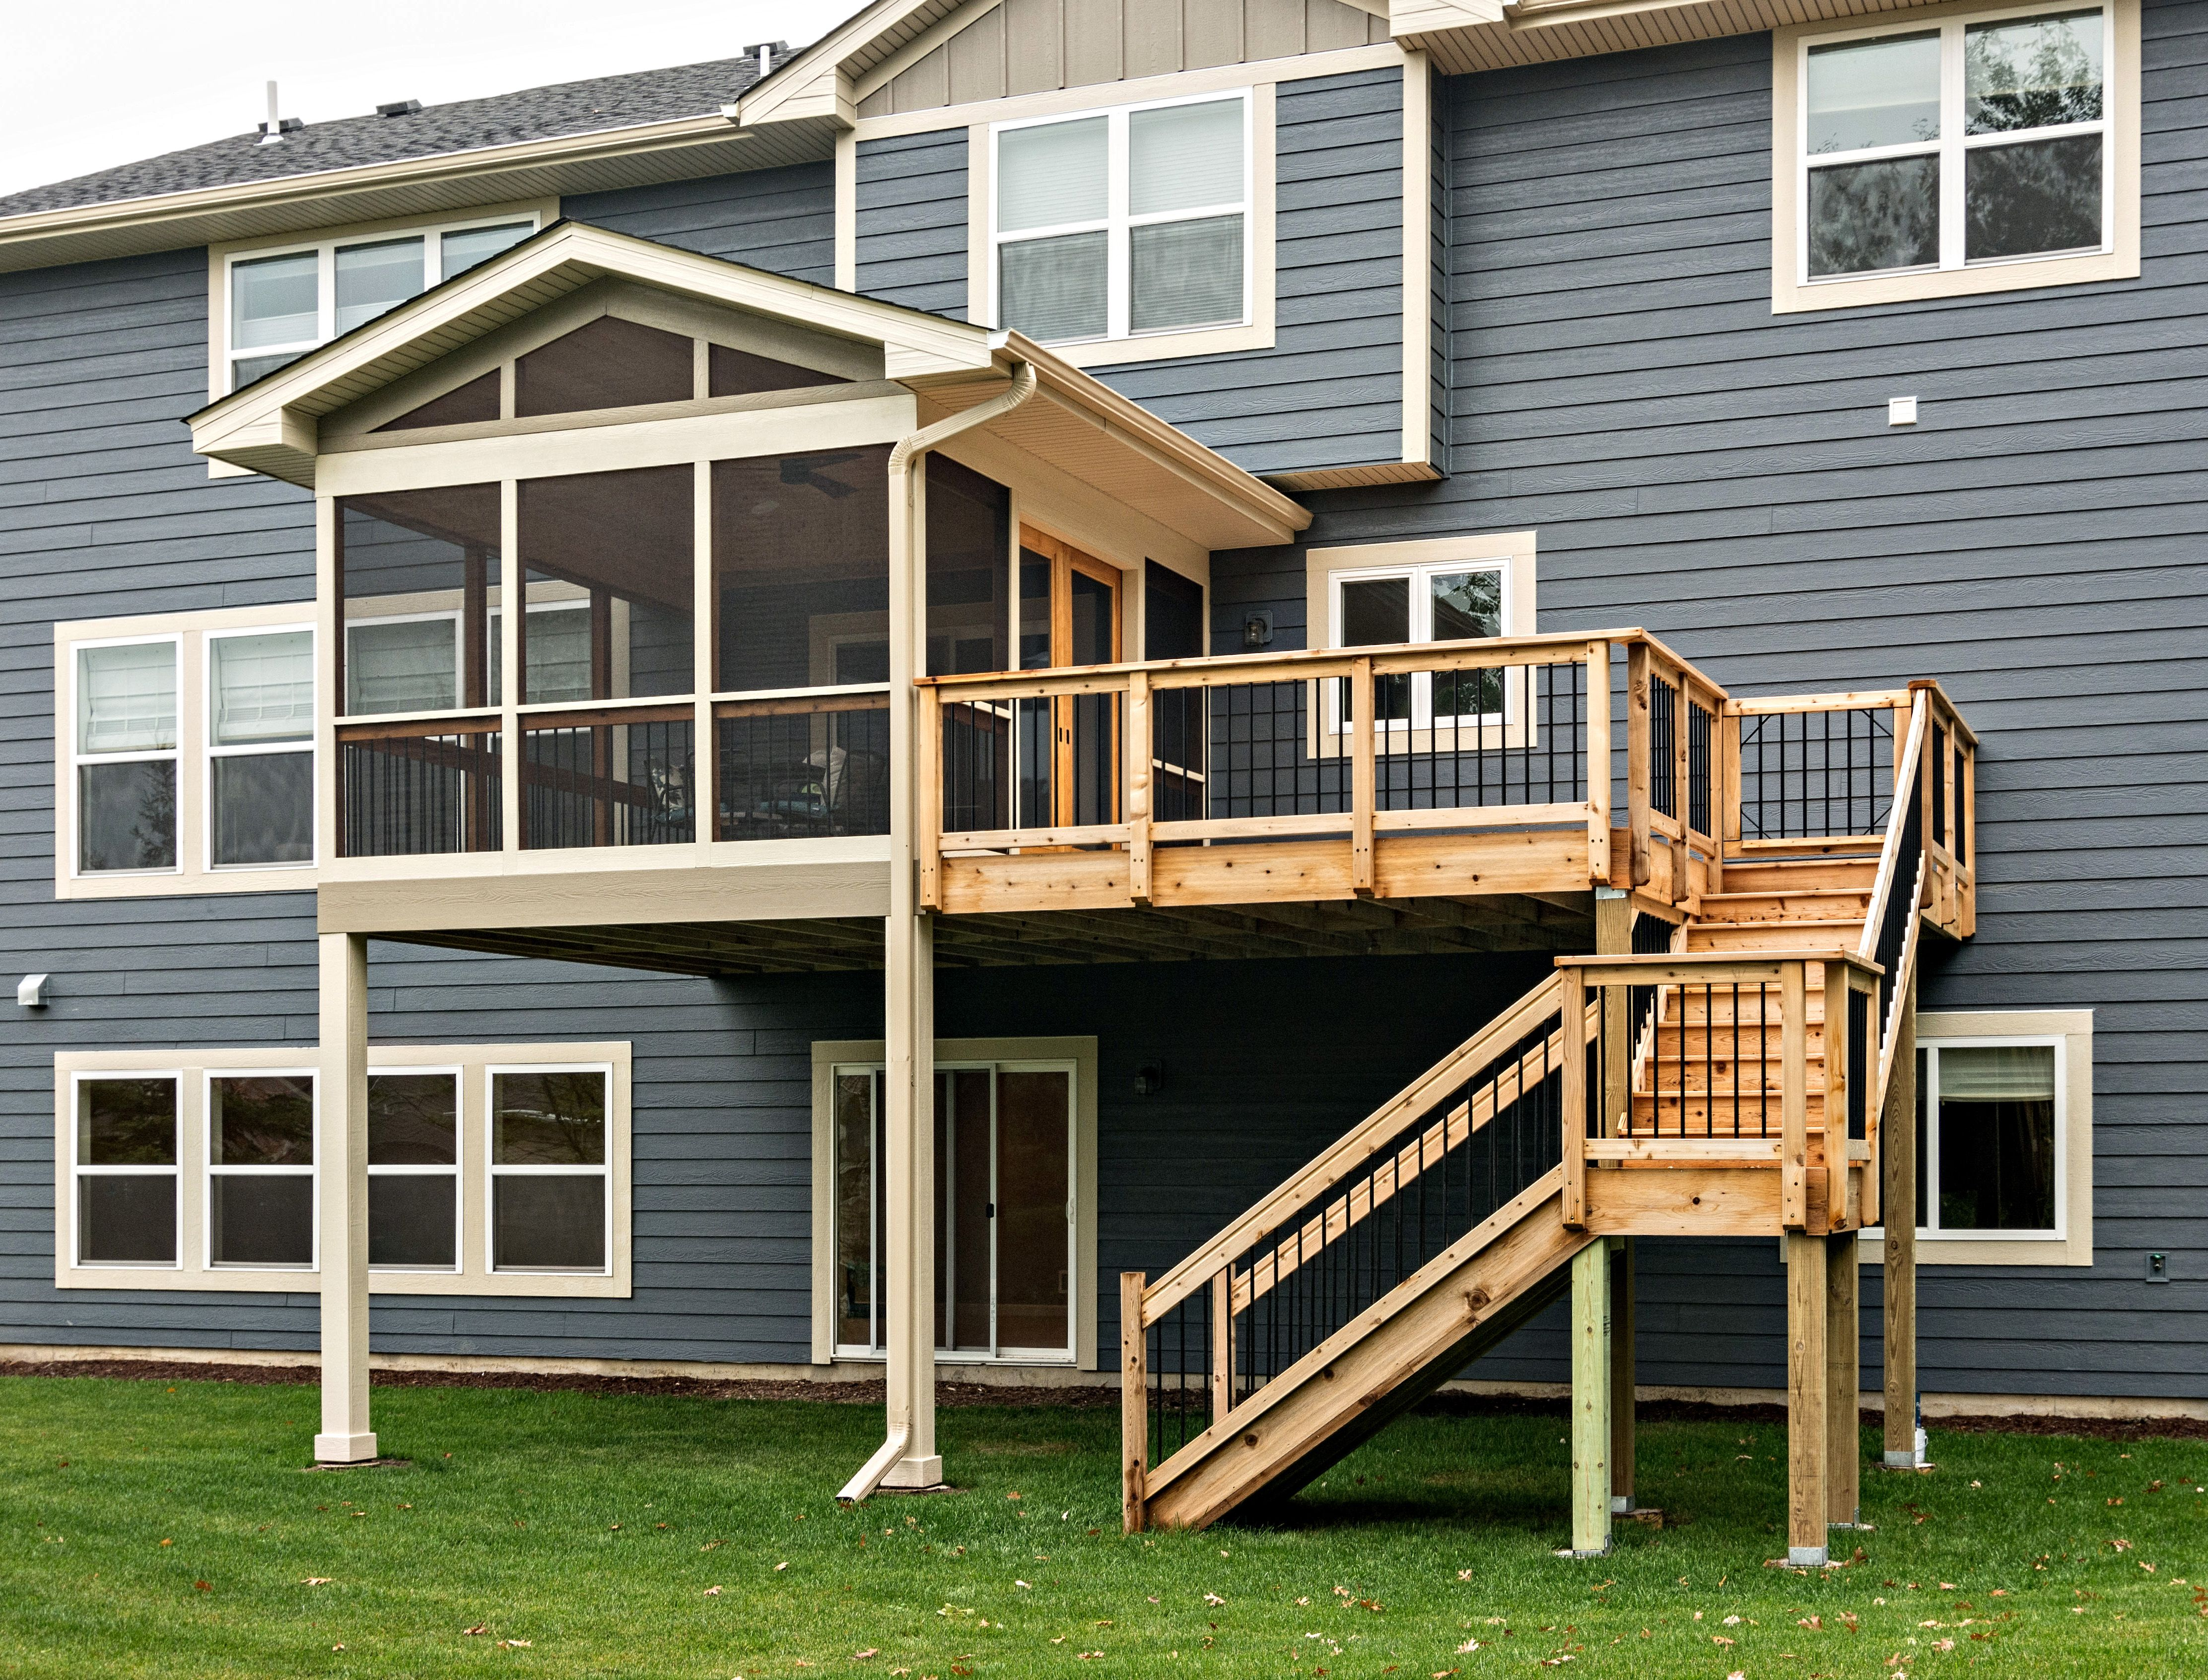 3 Season Porch And Deck Beautiful Space To Enjoy The